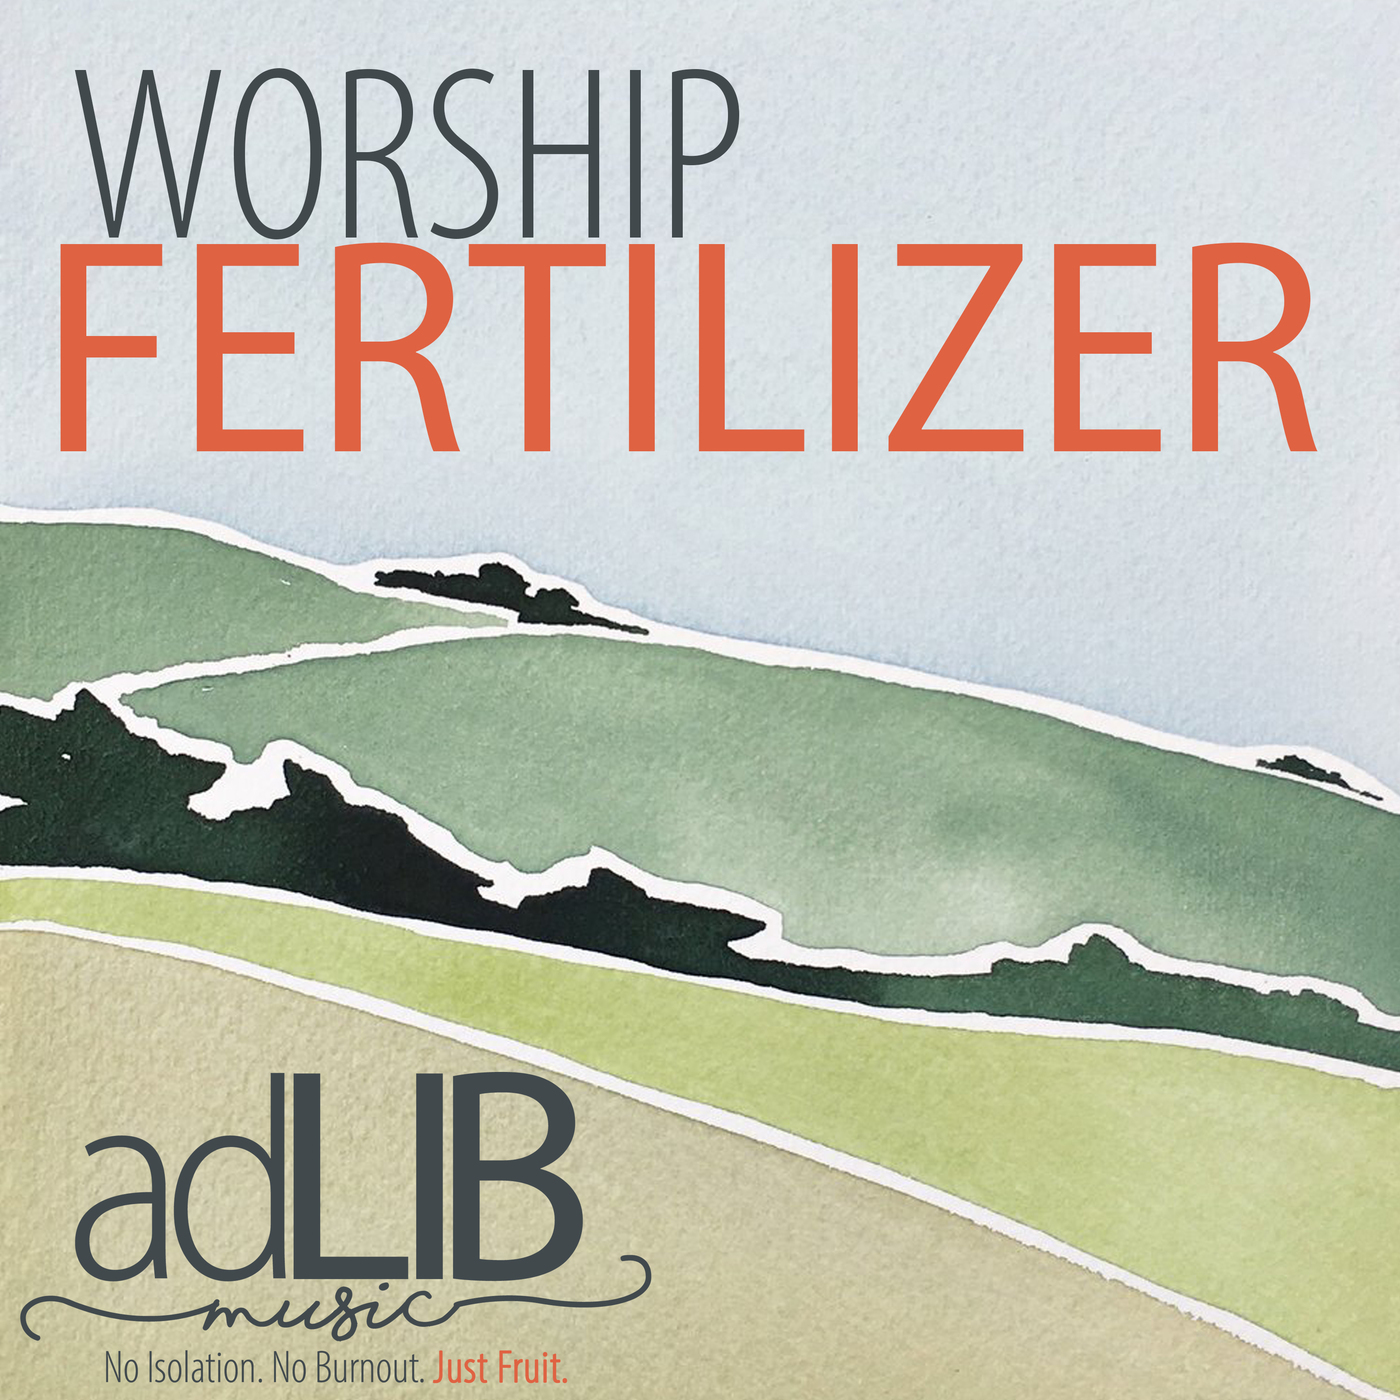 Worship Fertilizer from Ad Lib Music